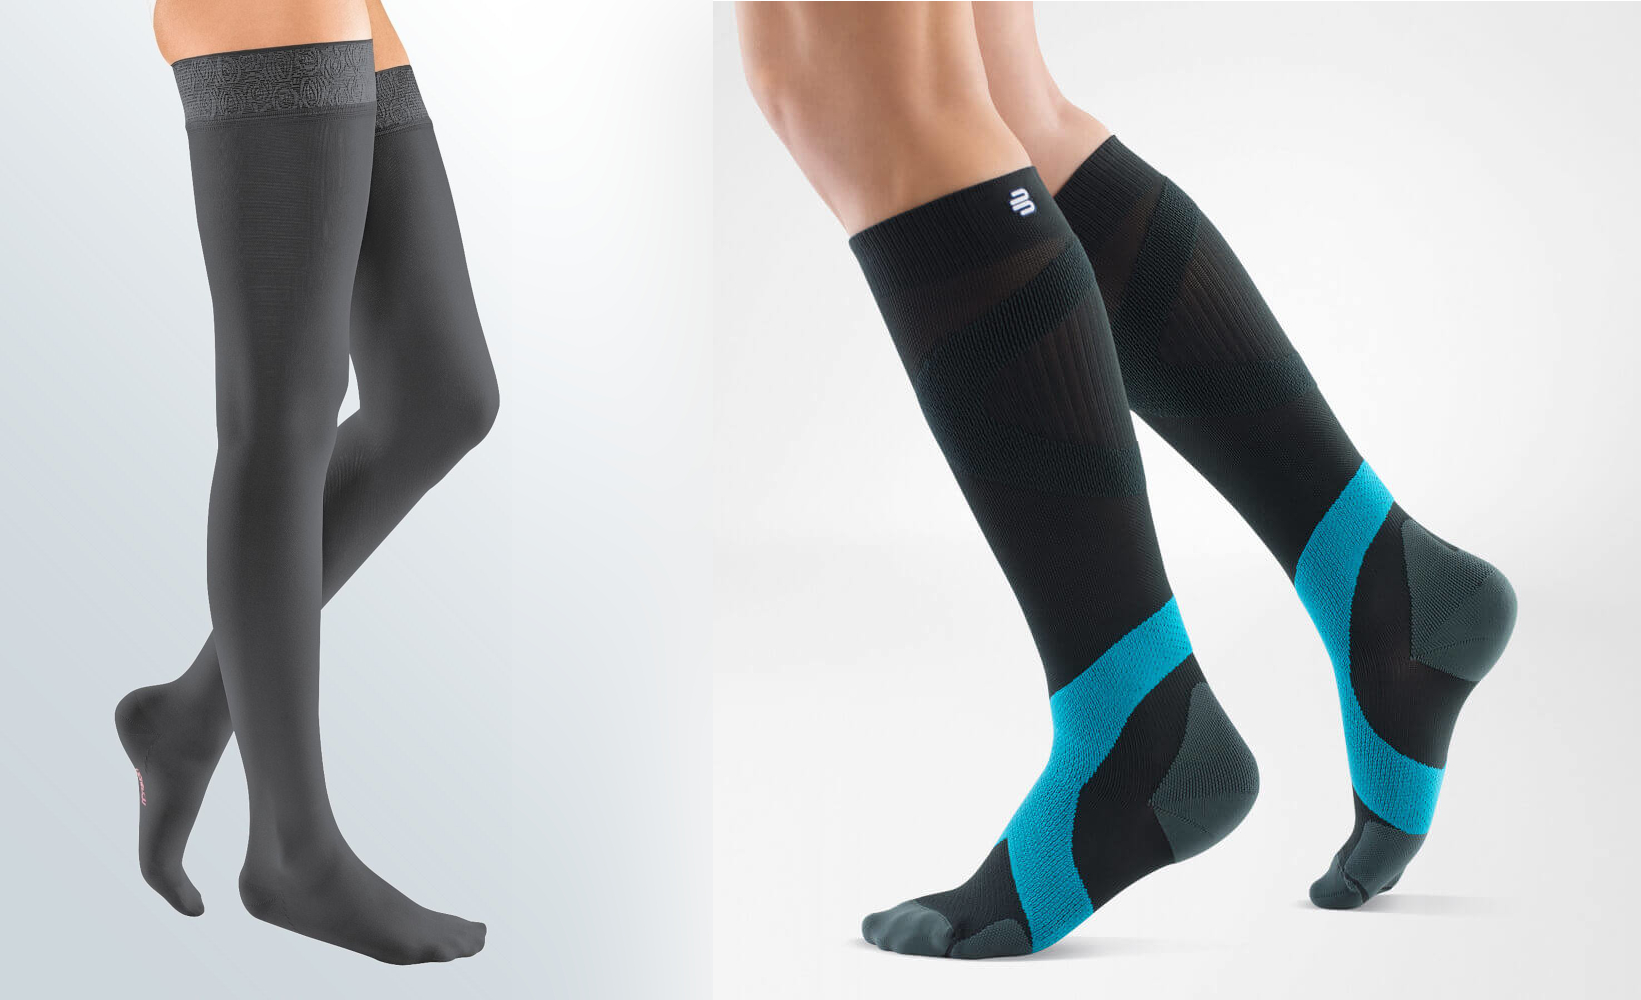 Compression Wear - Socks and Stockings